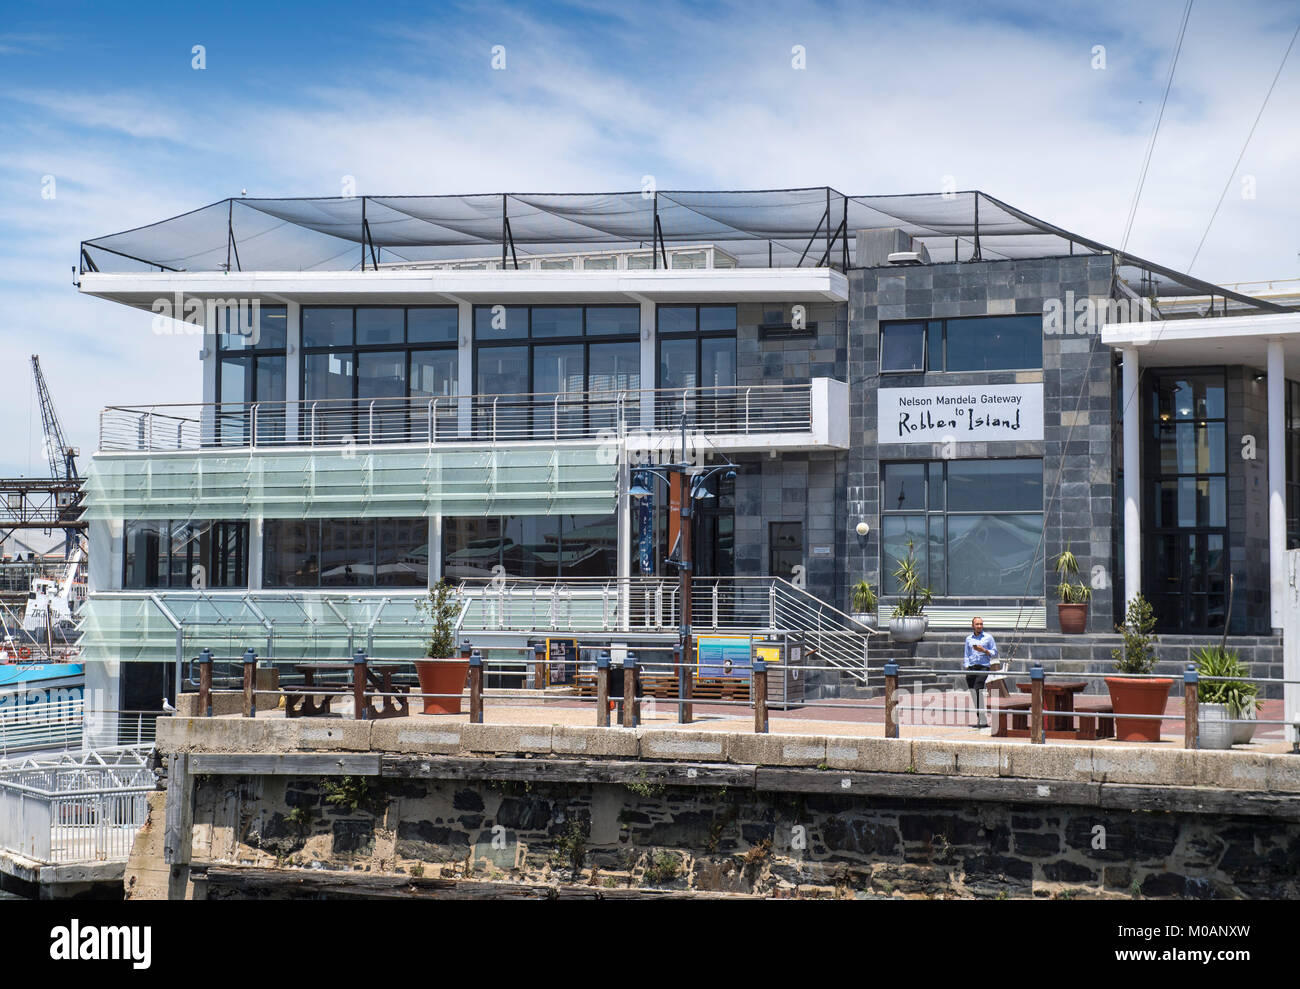 Nelson Mandela Gateway, a museum and ferry terminal to Robben Island, which is located on the V&A Waterfront - Stock Image